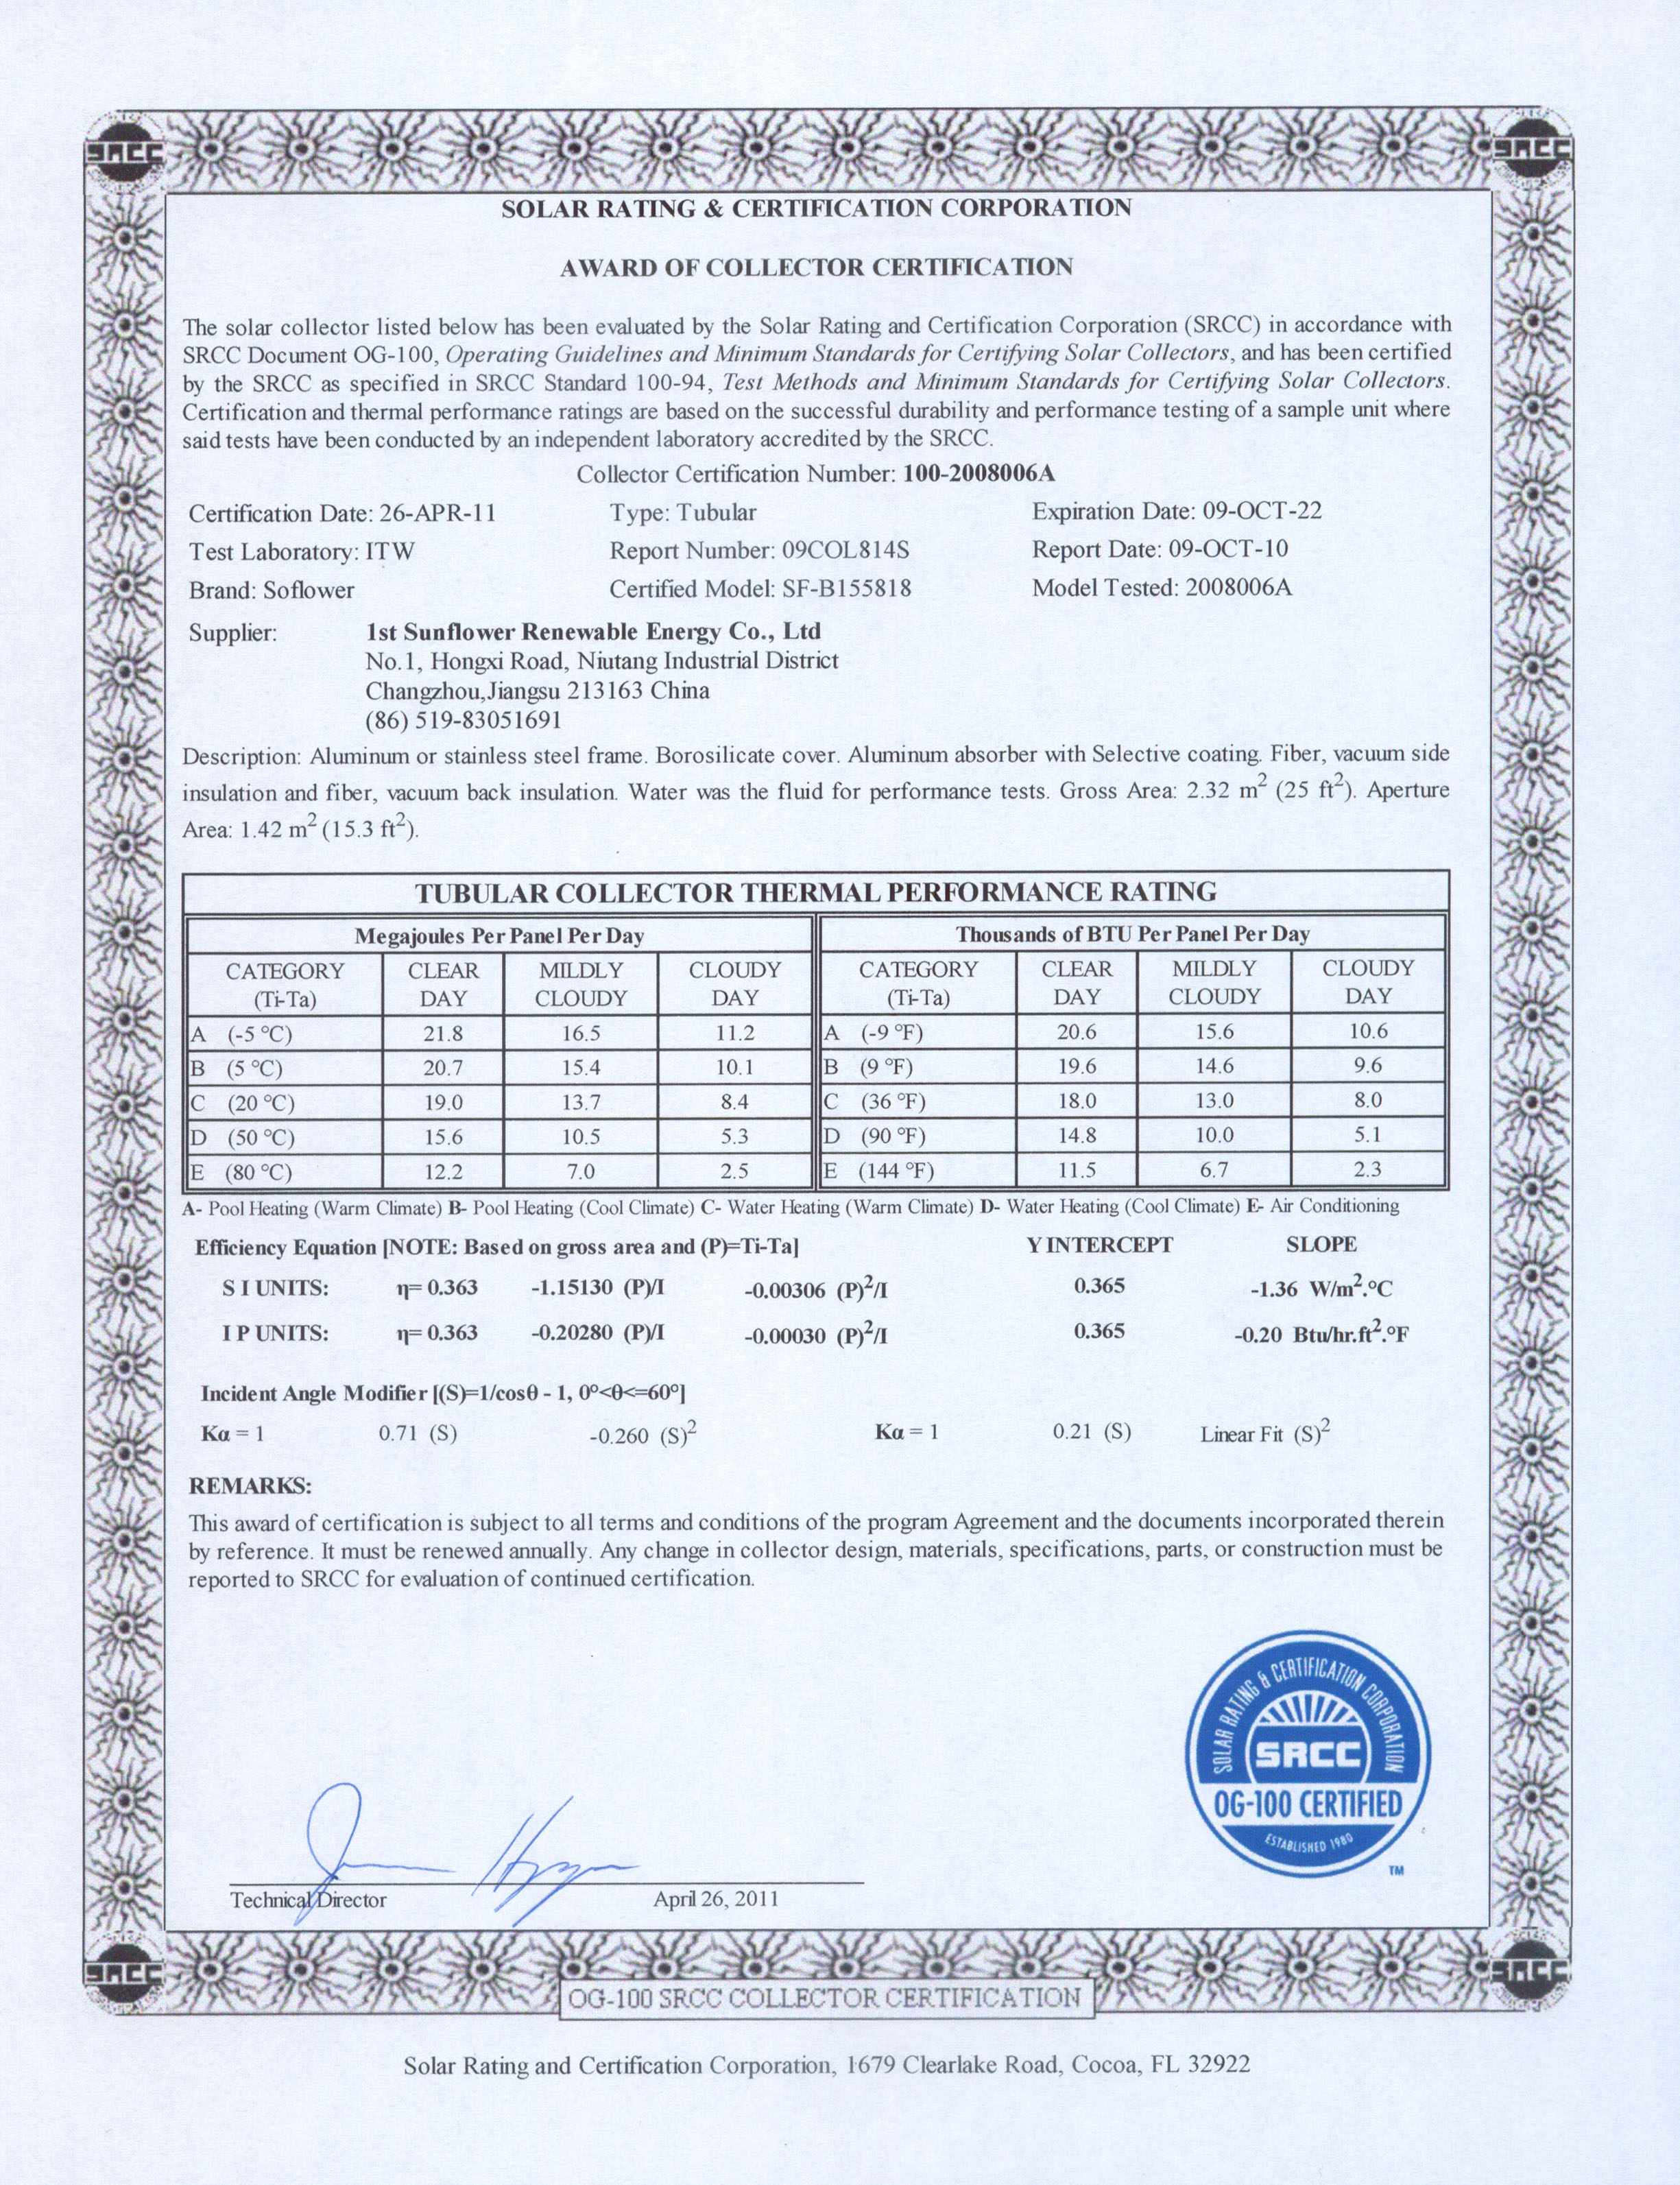 SF-B155818 SRCC certificate from ITW lab